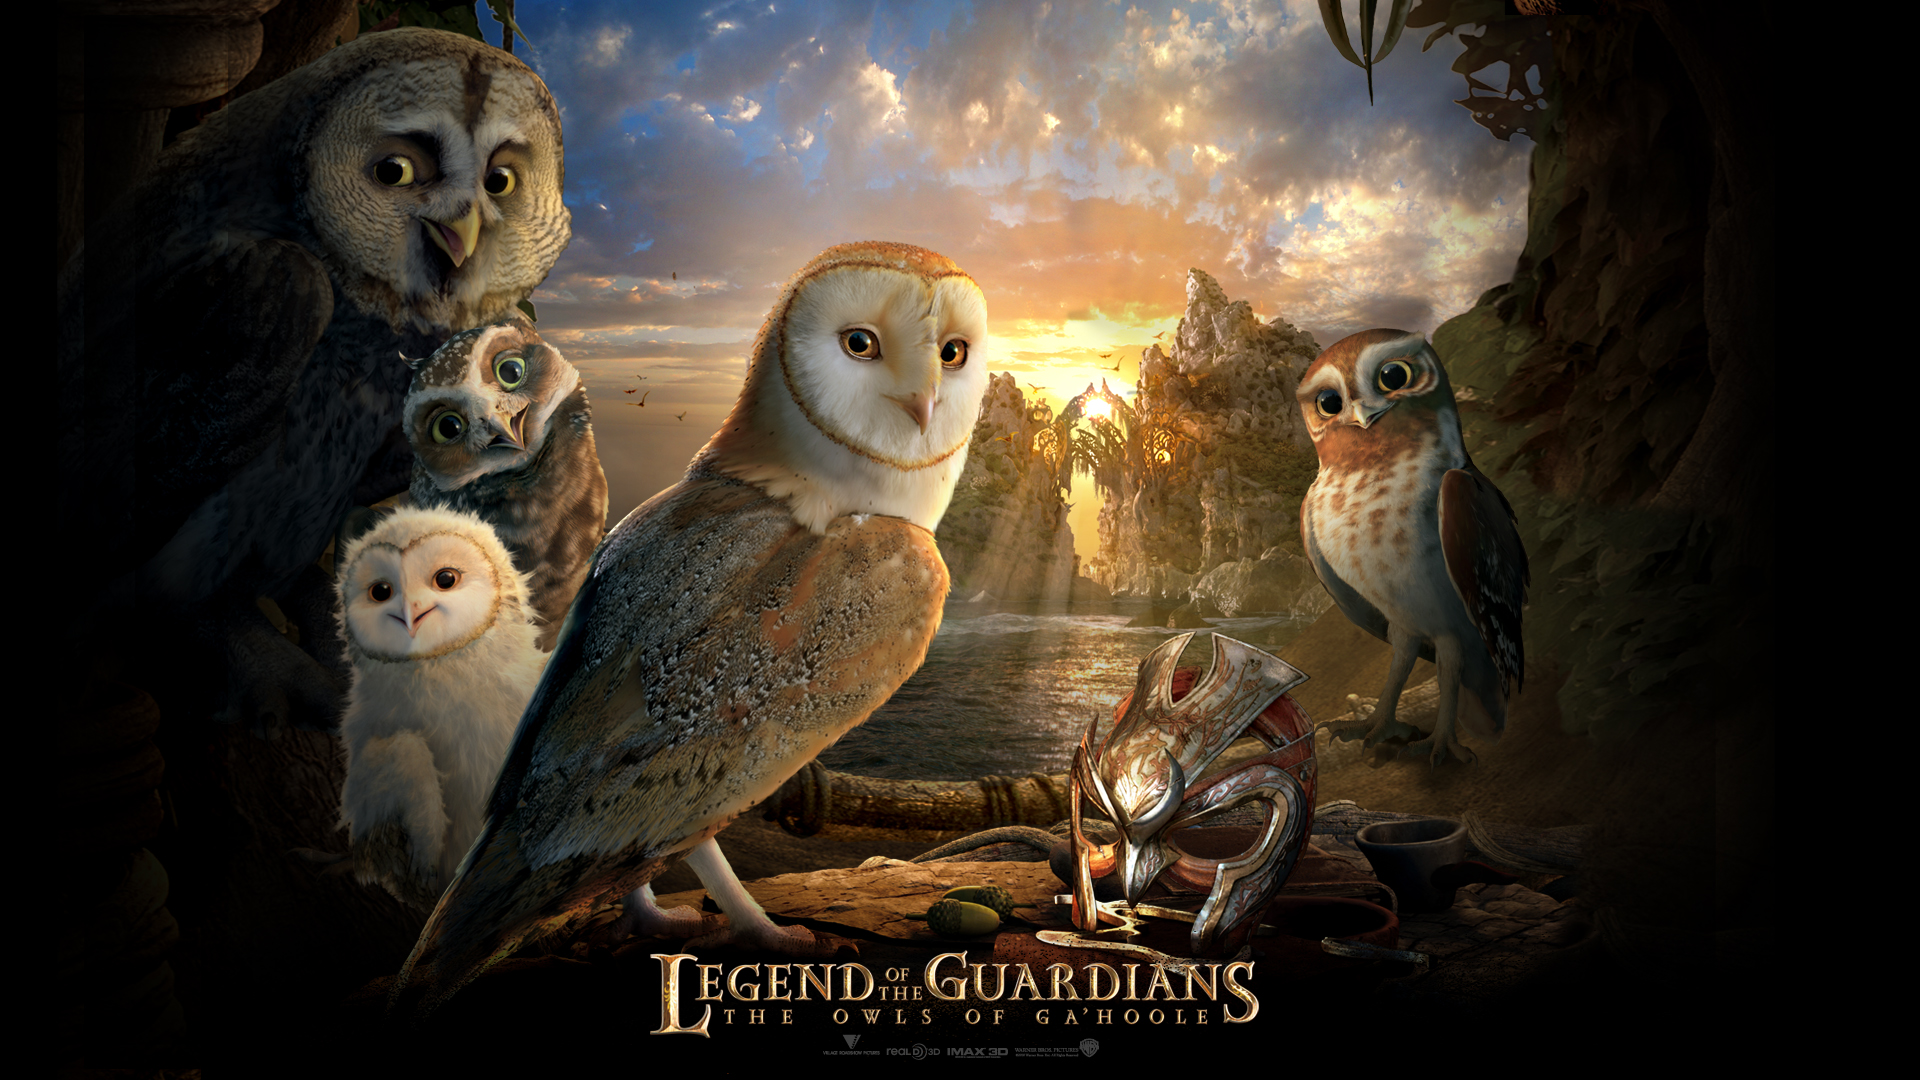 Legend of the Guardian – The Owls of Ga'Hole"